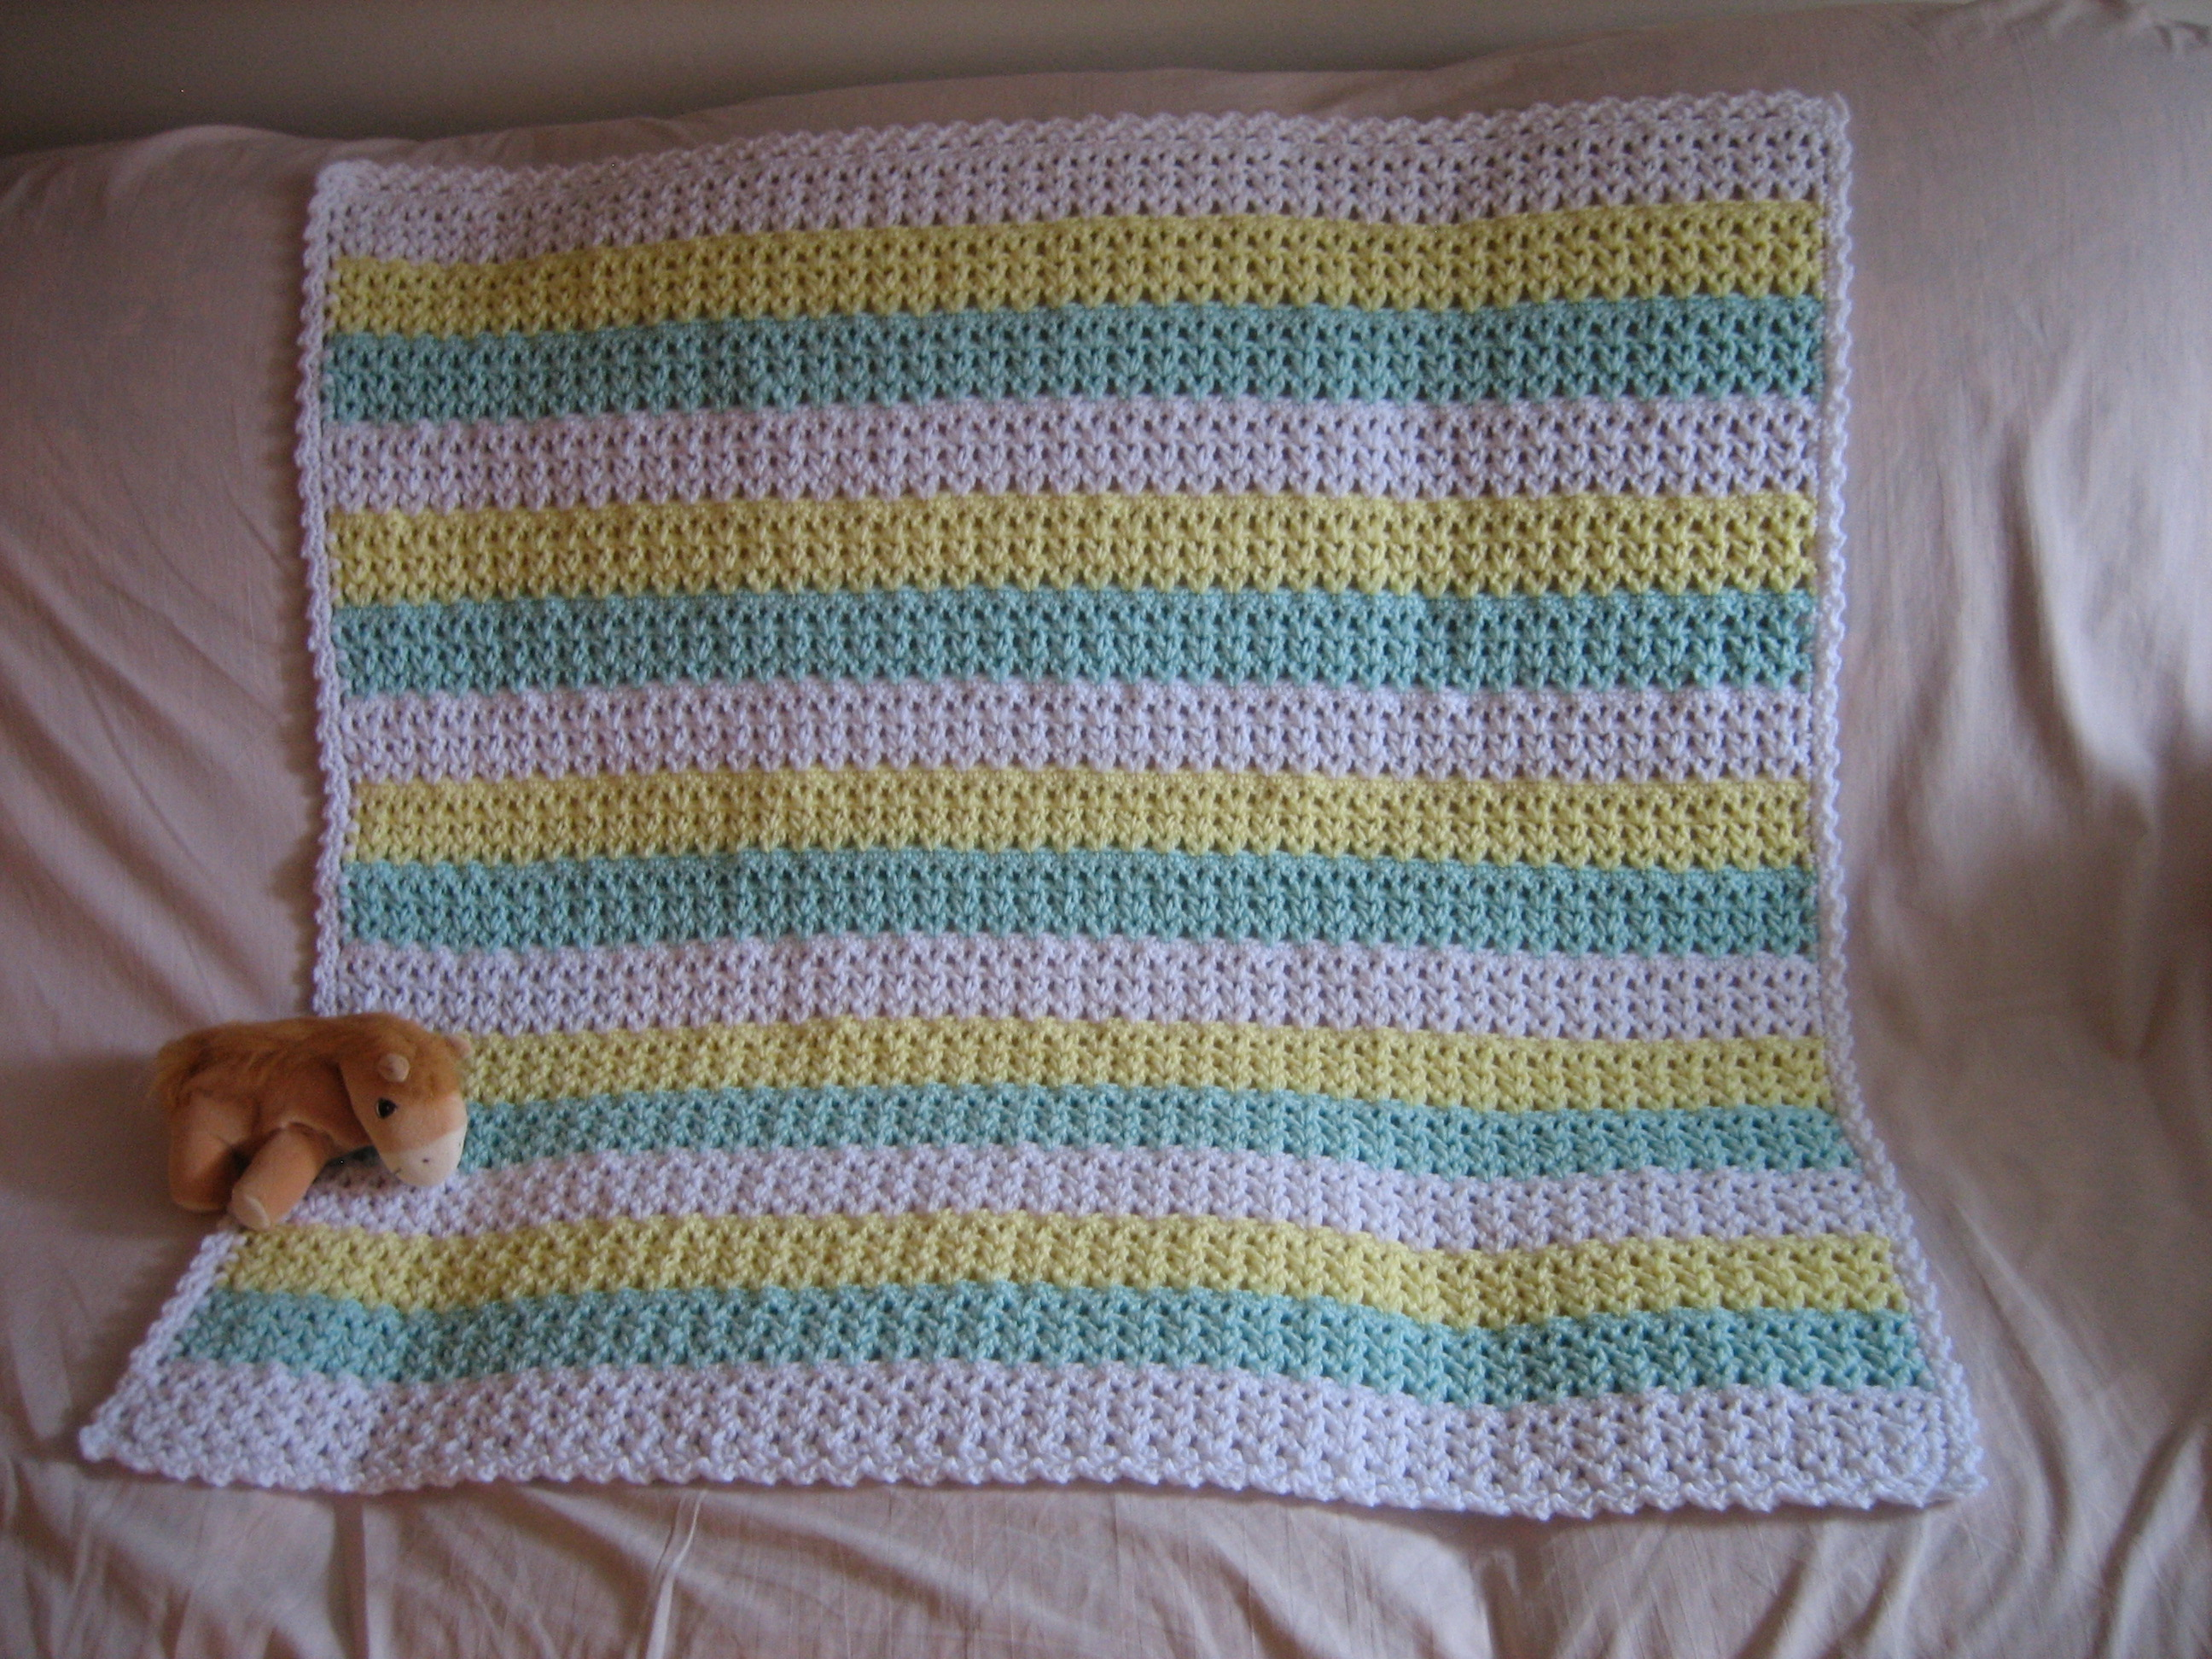 Striped Crochet Afghan FaveCrafts.com